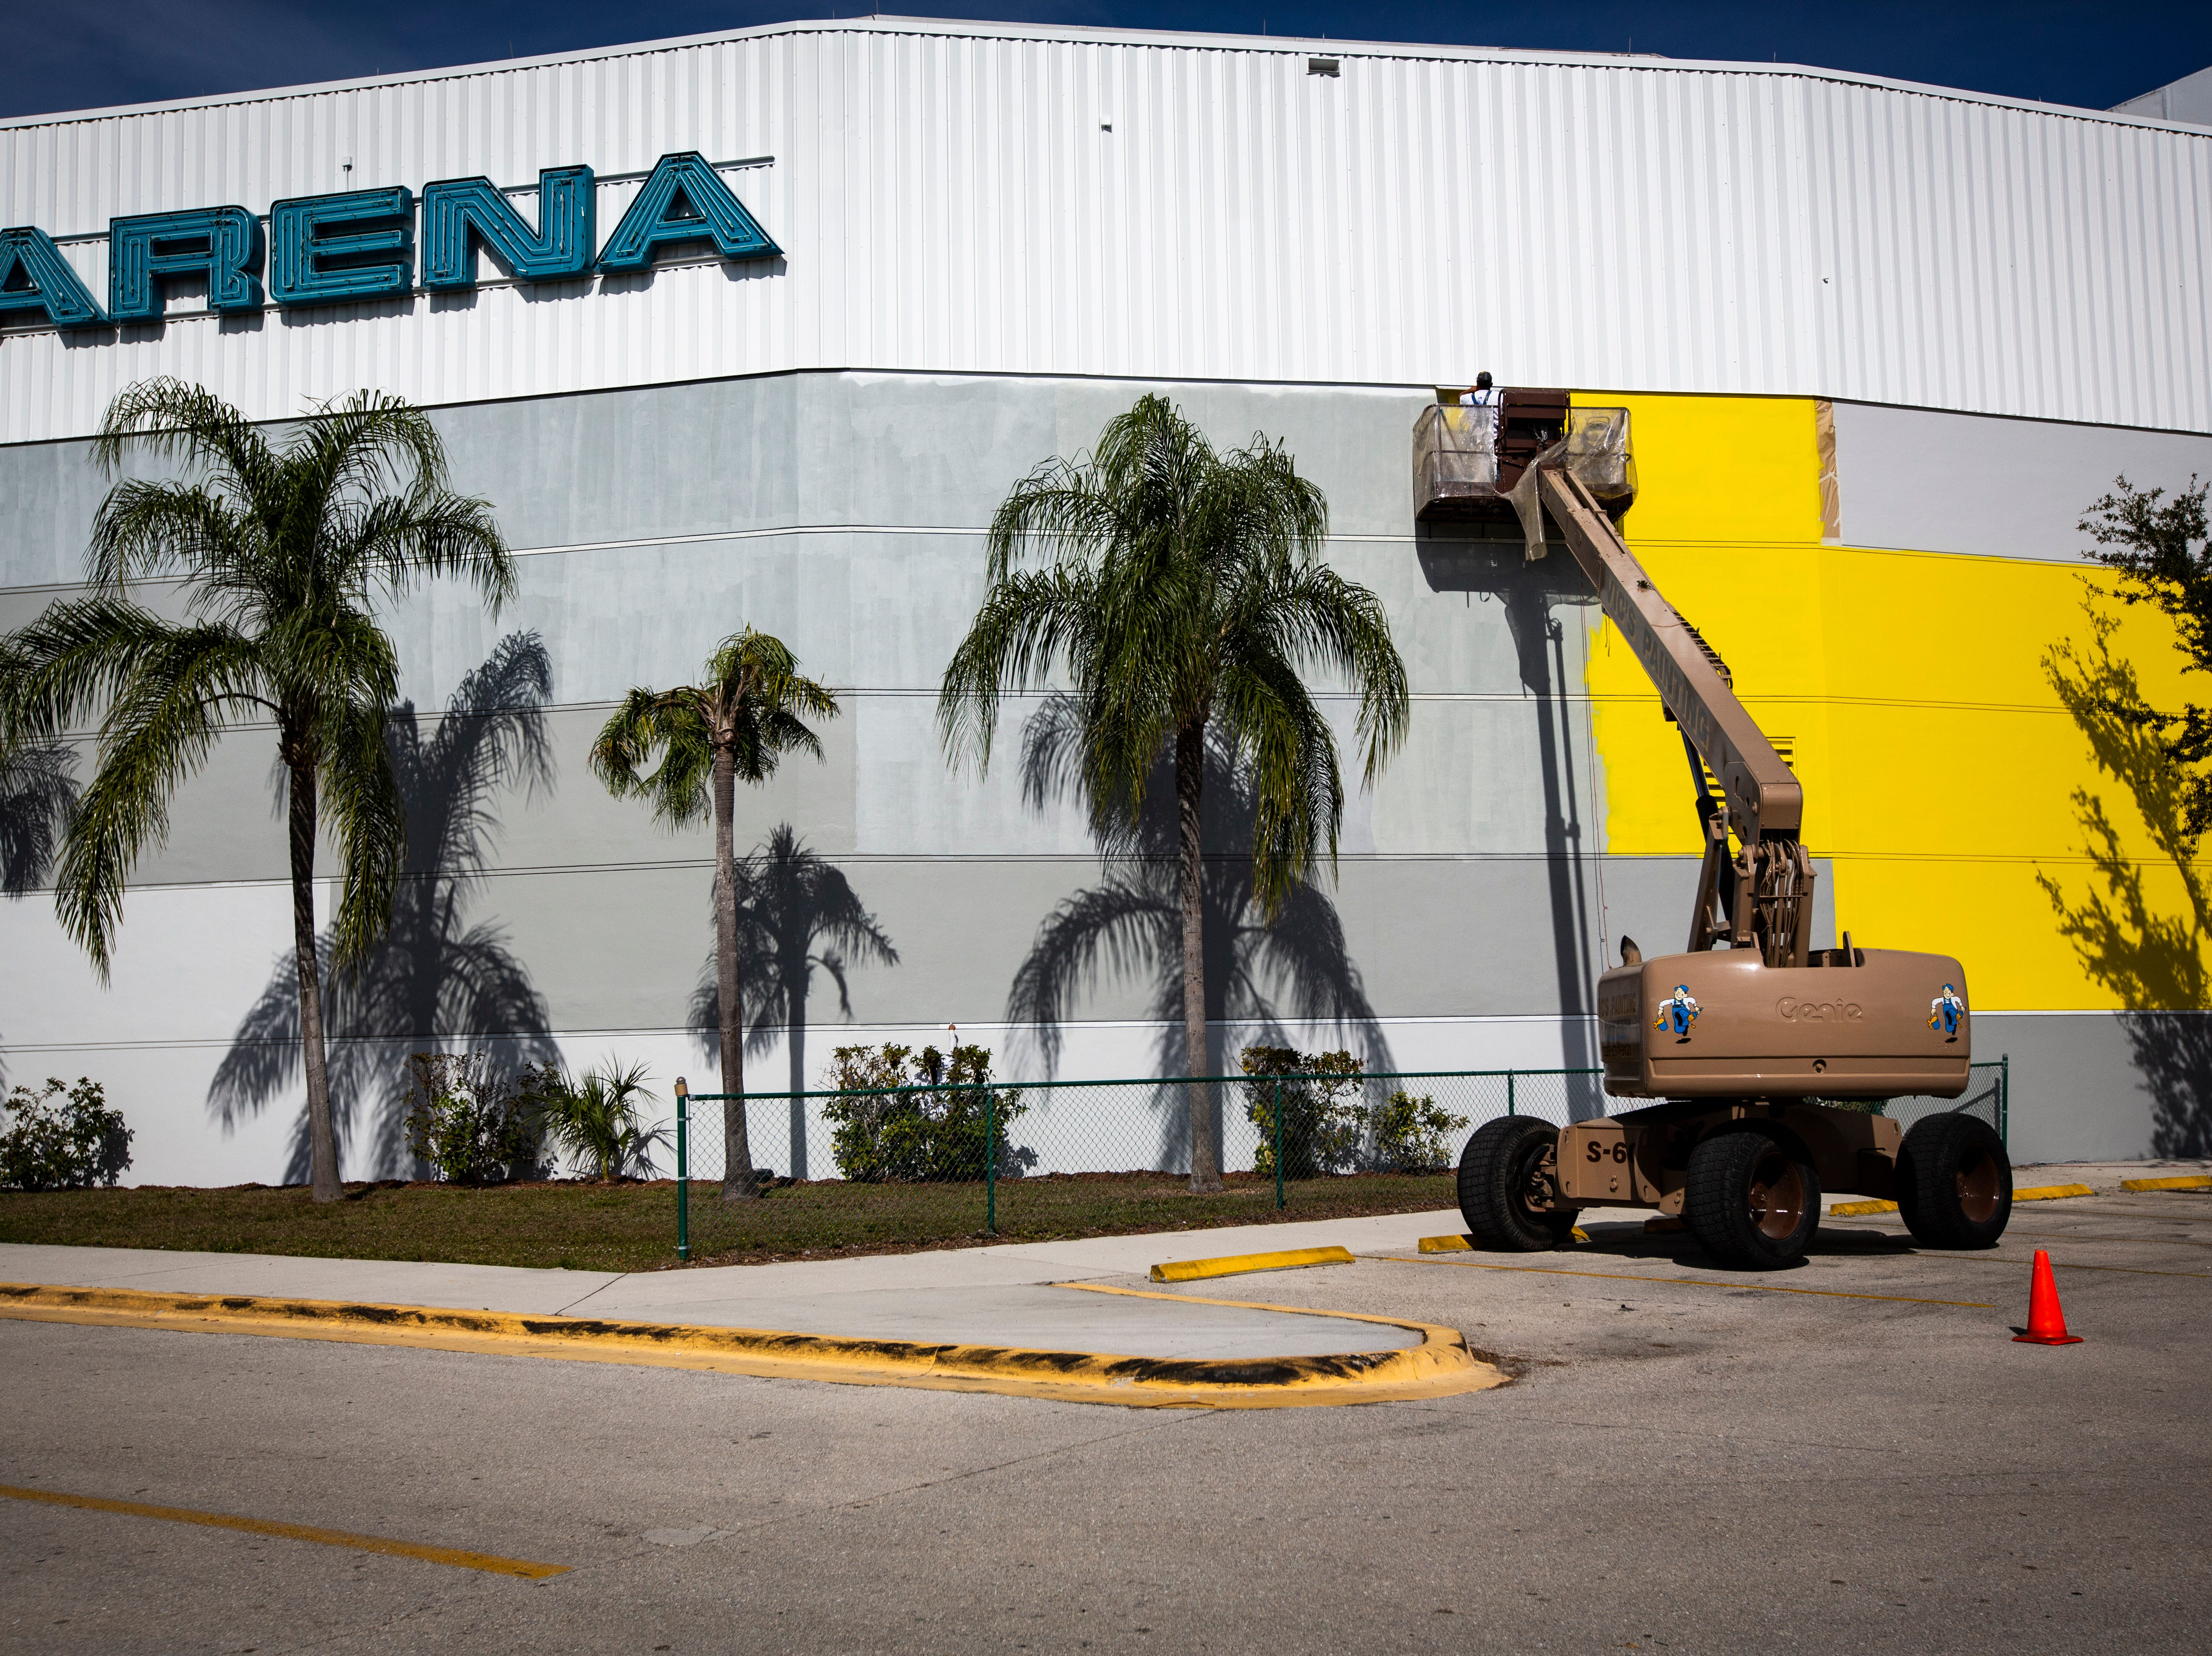 Workers from Vic's Painting & Reconstruction of Fort Myers have been working for three weeks on painting the Hertz Arena yellow and continued their work on Jan. 8, 2019. The Estero-based rental car giant took over the naming rights of the Germain Arena last year.